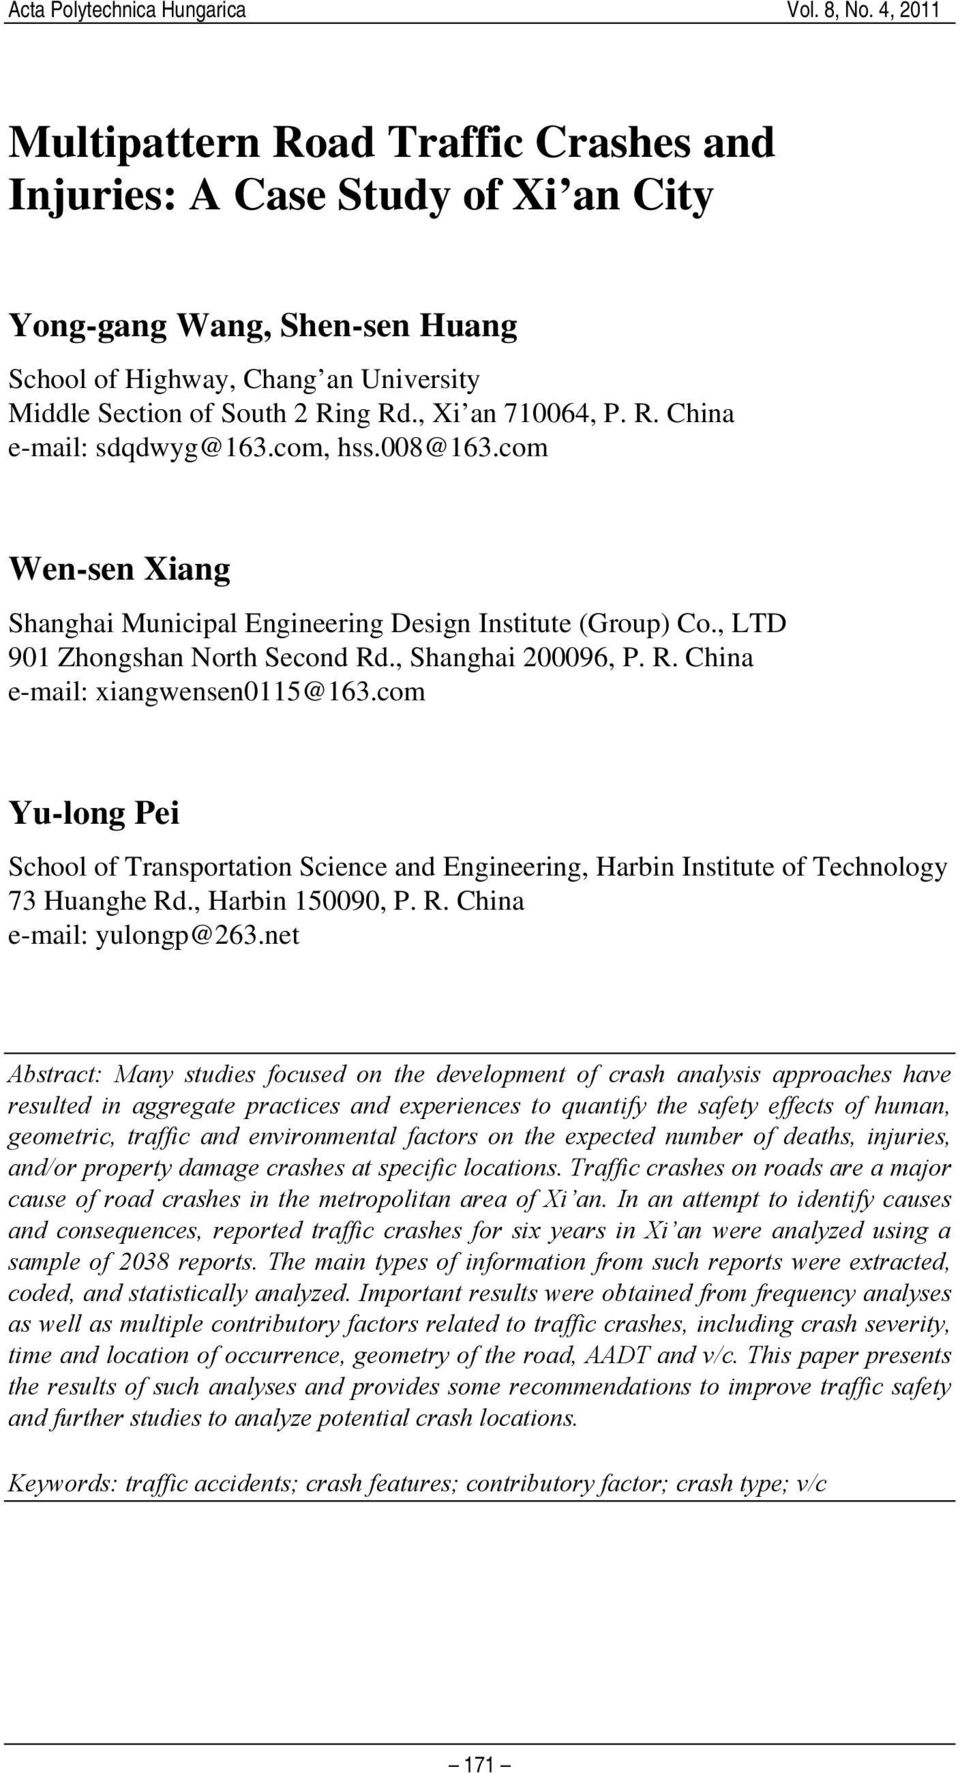 com Yu-long Pei School of Transportation Science and Engineering, Harbin Institute of Technology 73 Huanghe Rd., Harbin 150090, P. R. China e-mail: yulongp@263.